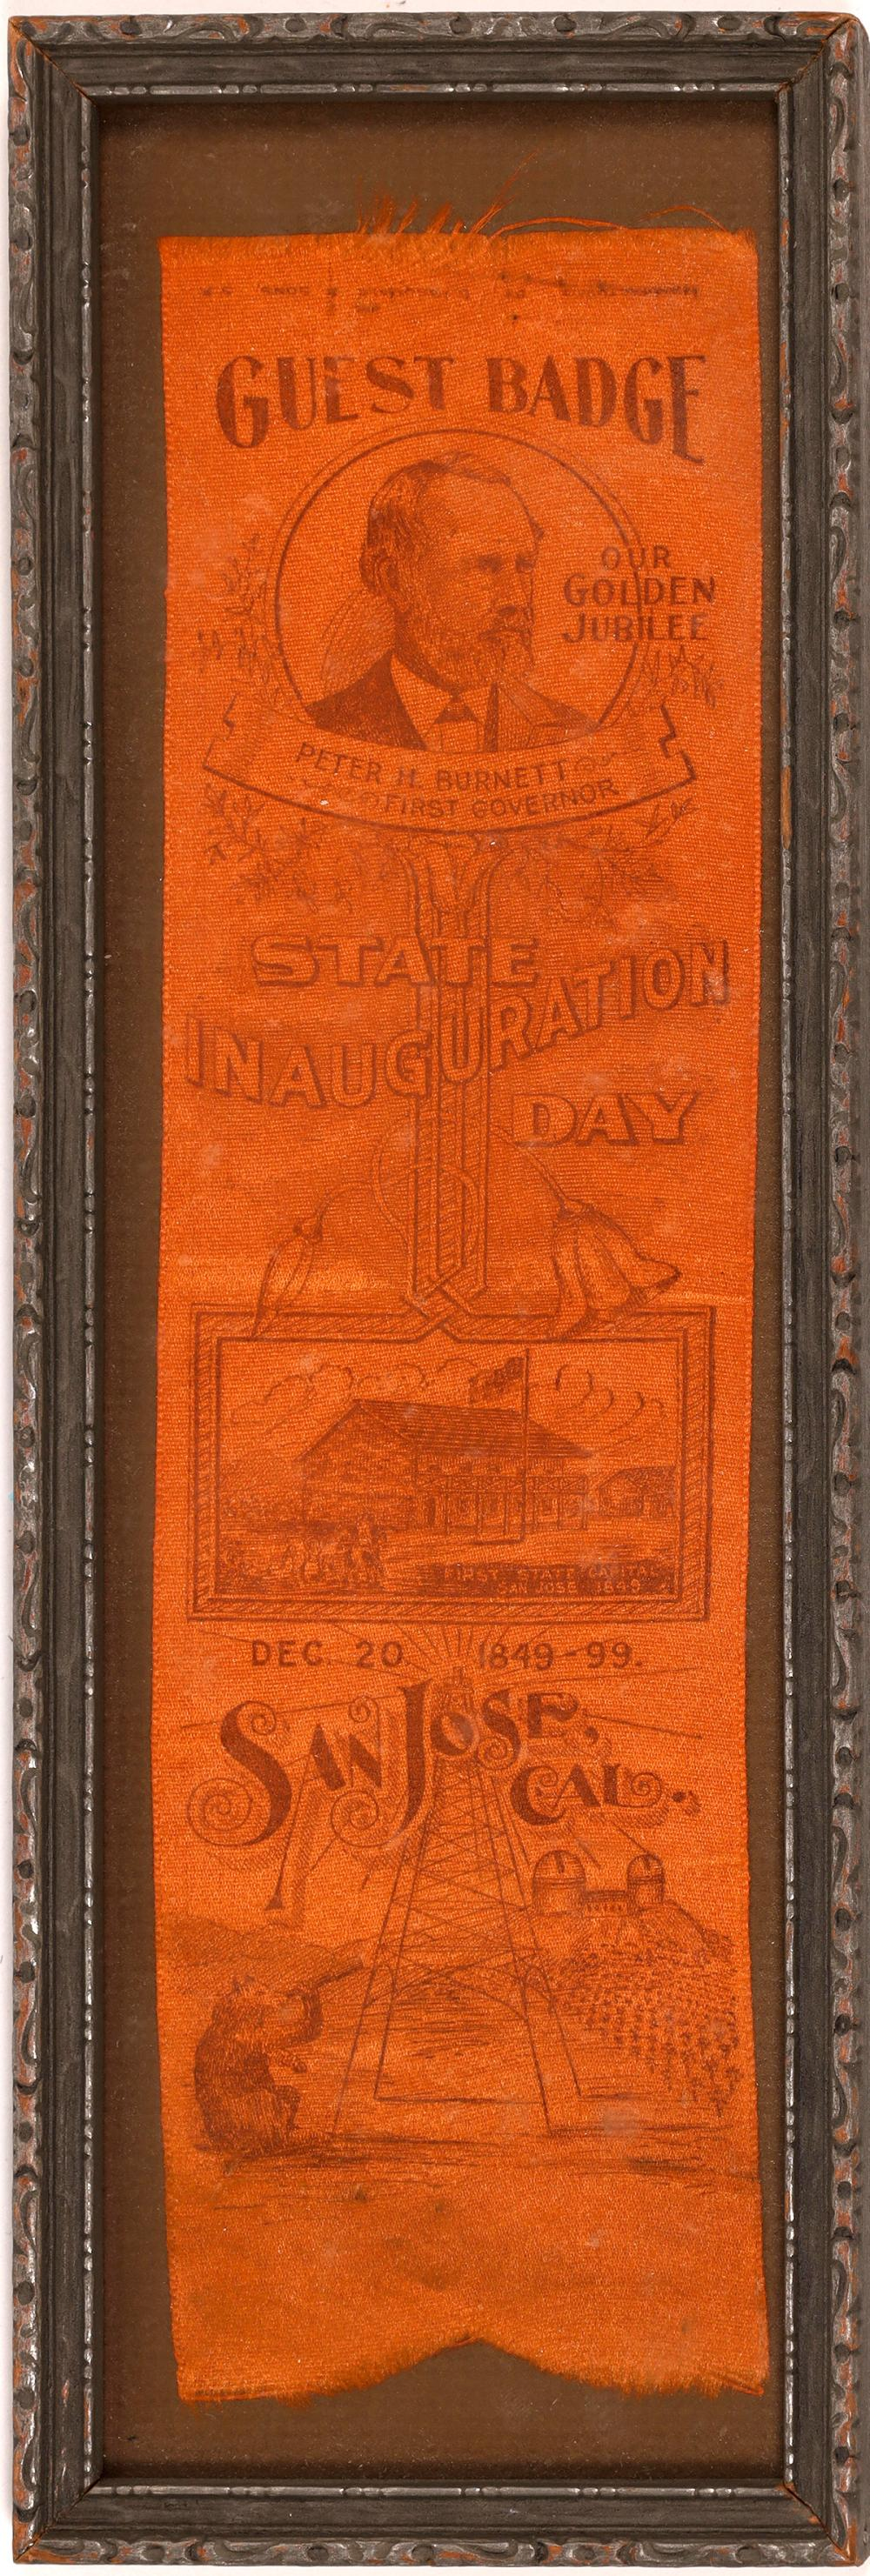 State Inauguration Day Golden Jubilee Guest Badge [138554]